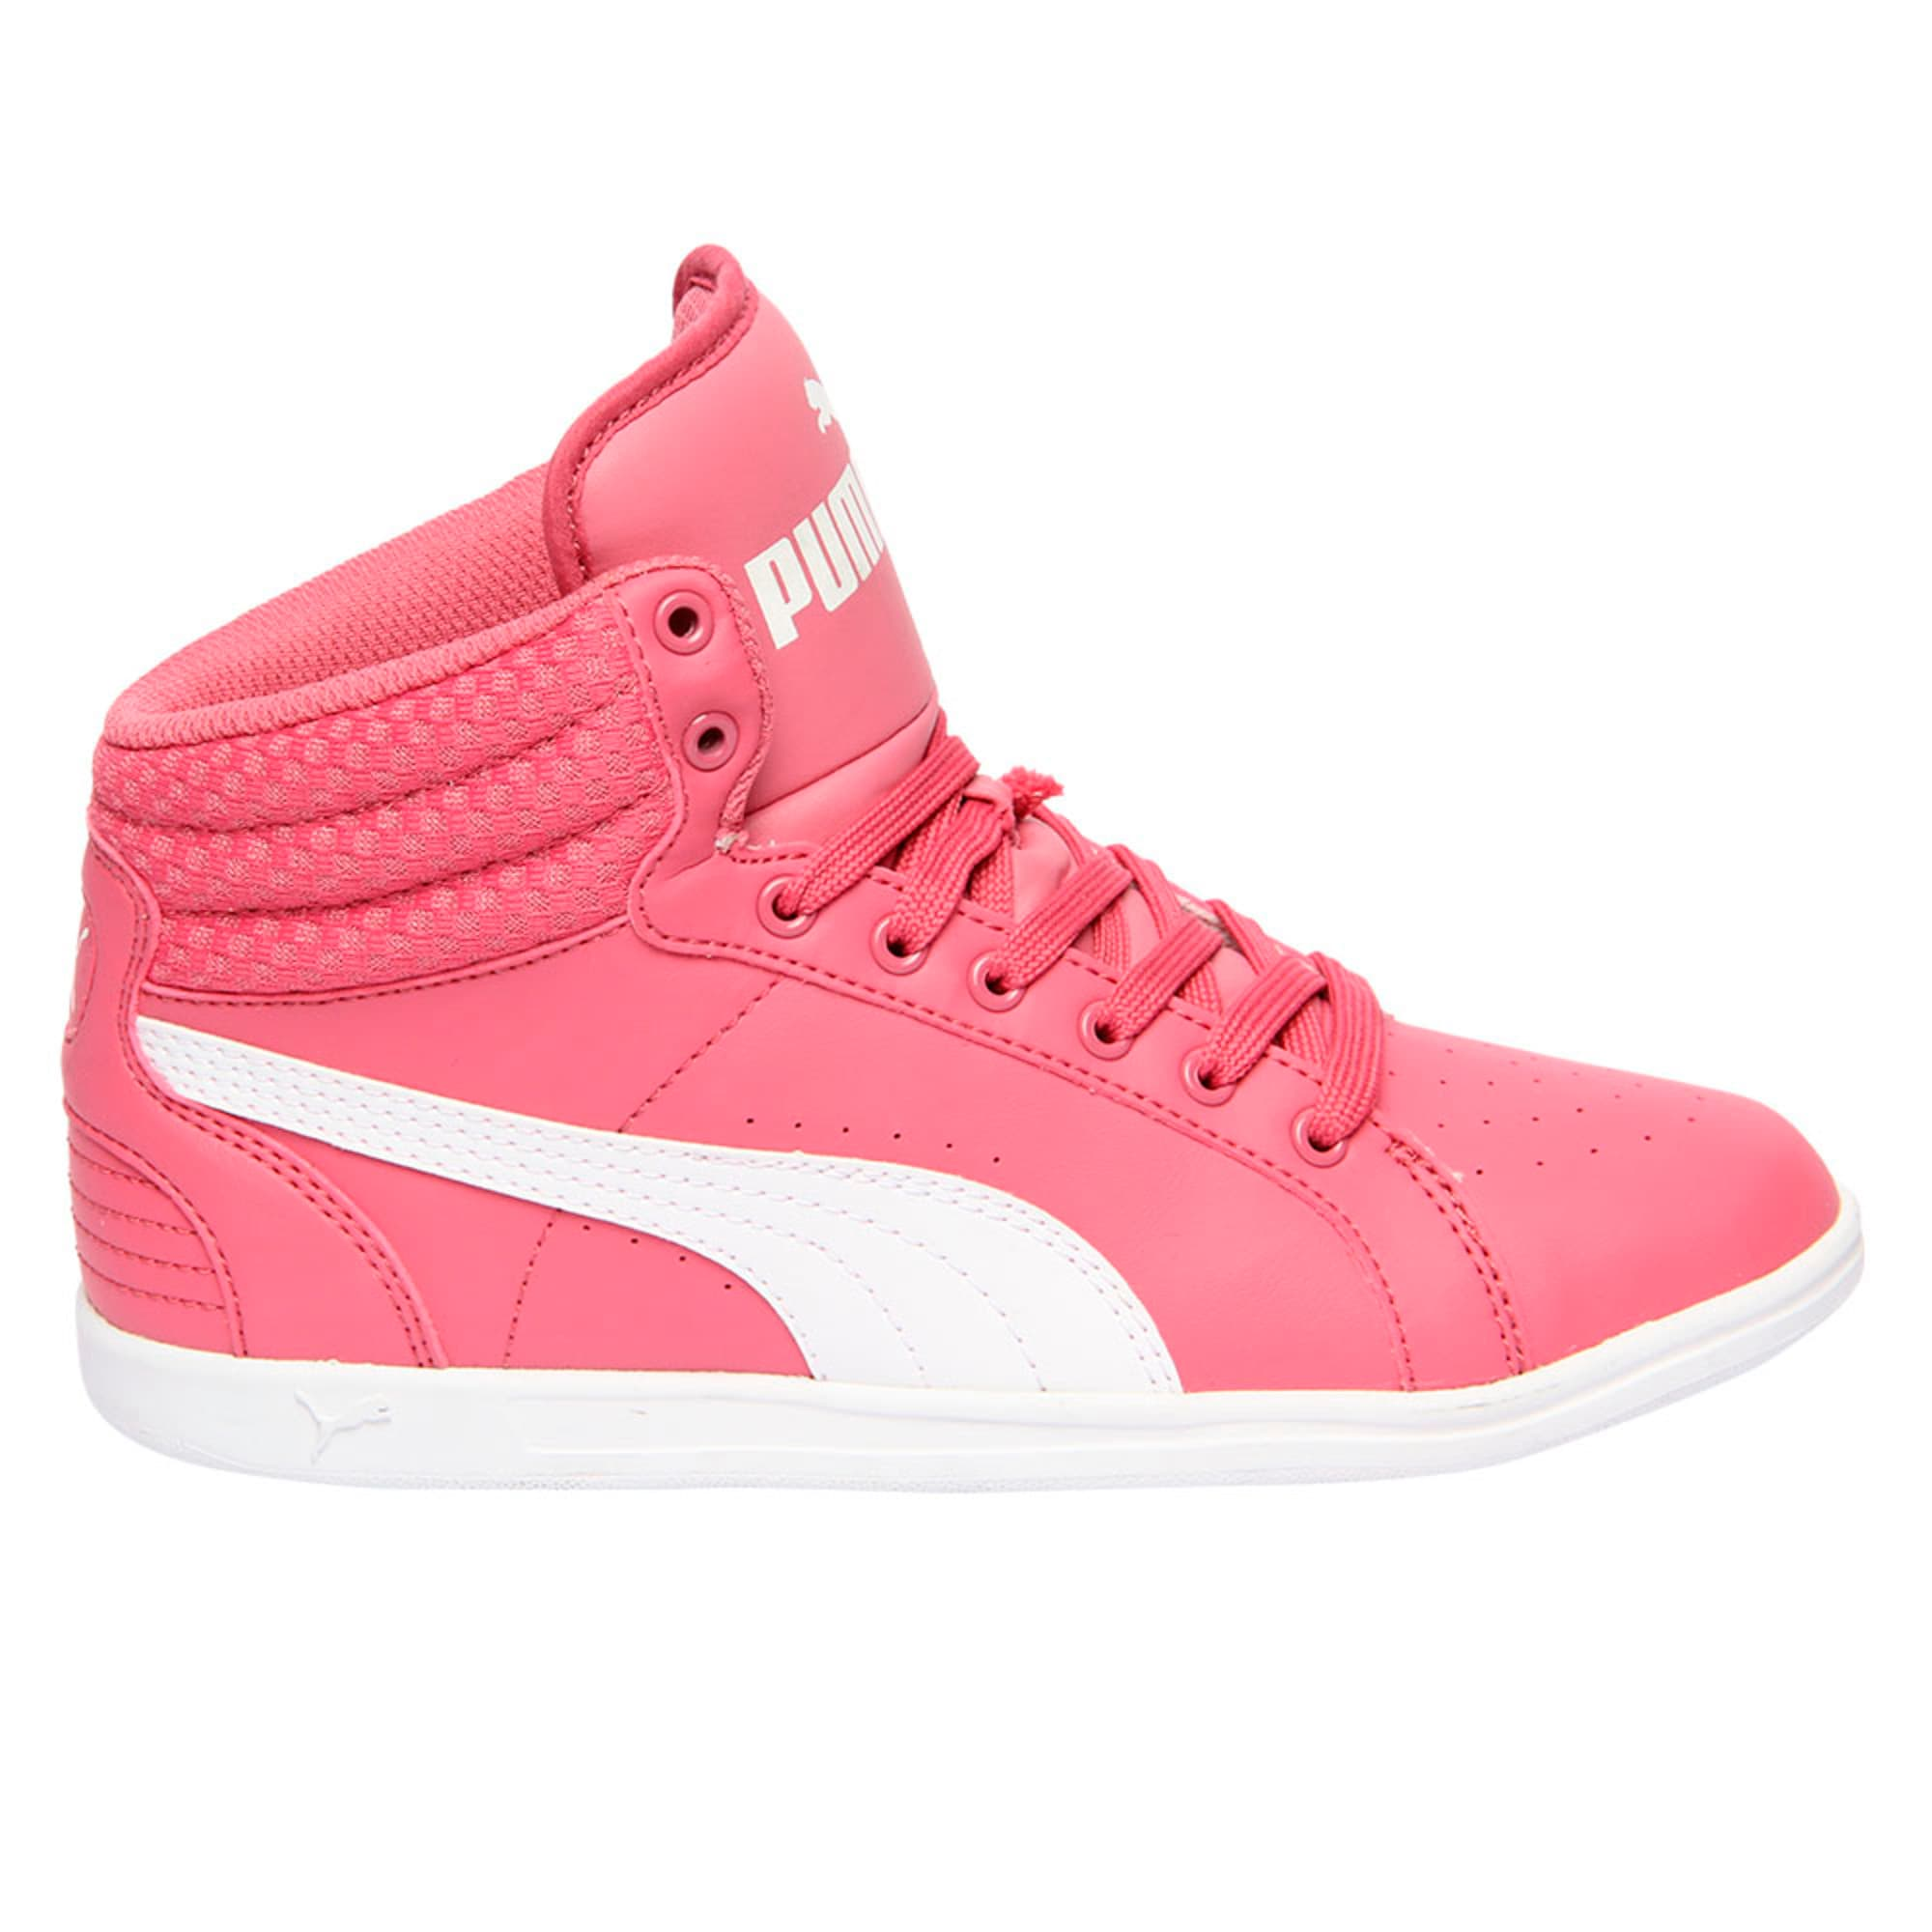 Thumbnail 5 of Puma Ikaz Mid v2 Jr, Rapture Rose-Puma White, medium-IND